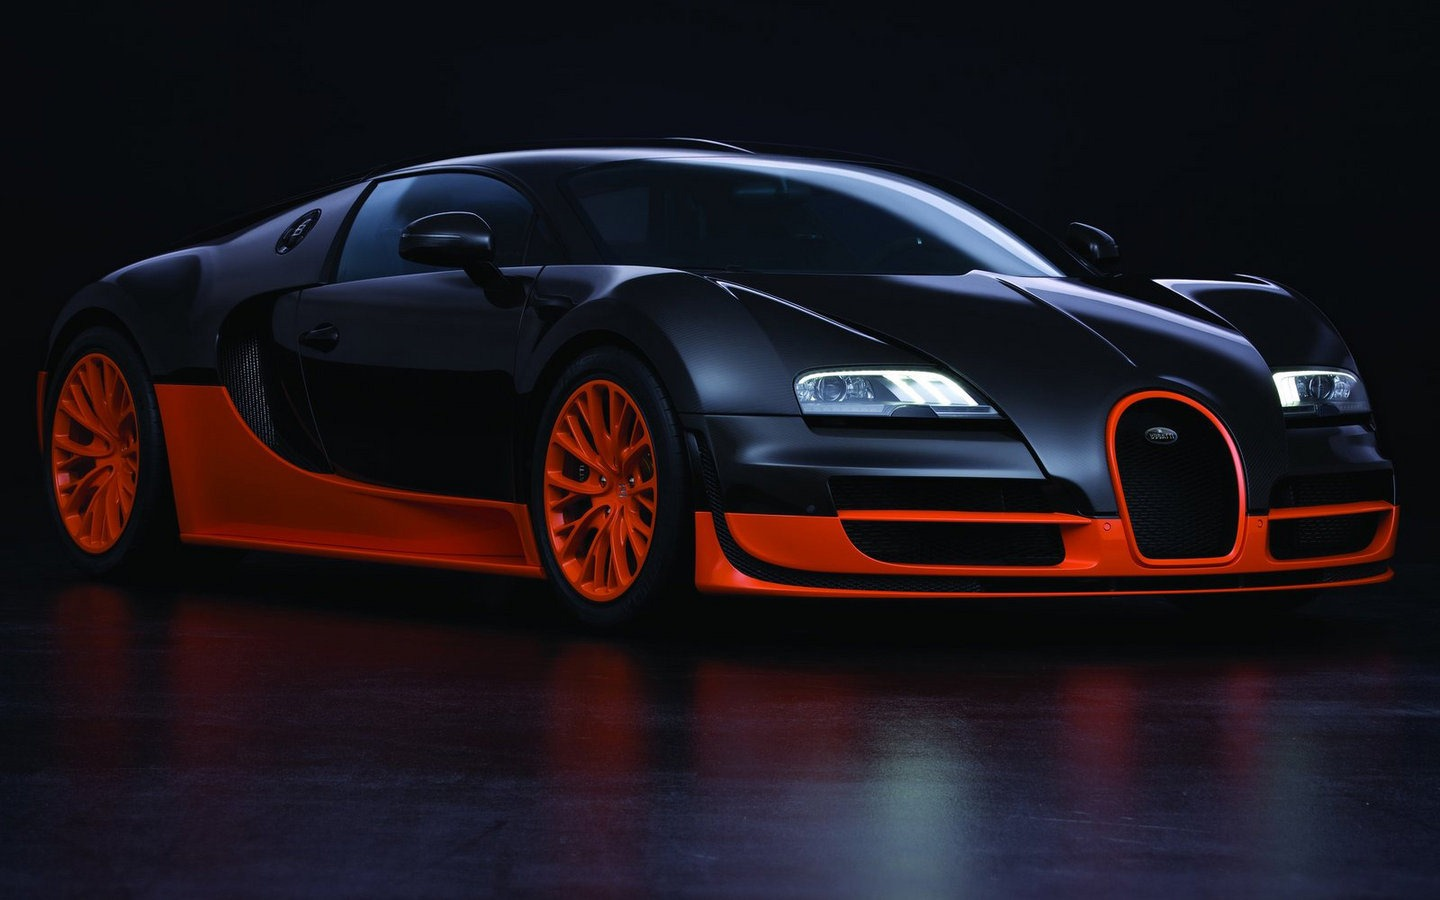 pic new posts: Wallpaper Bugatti Veyron Super Sport